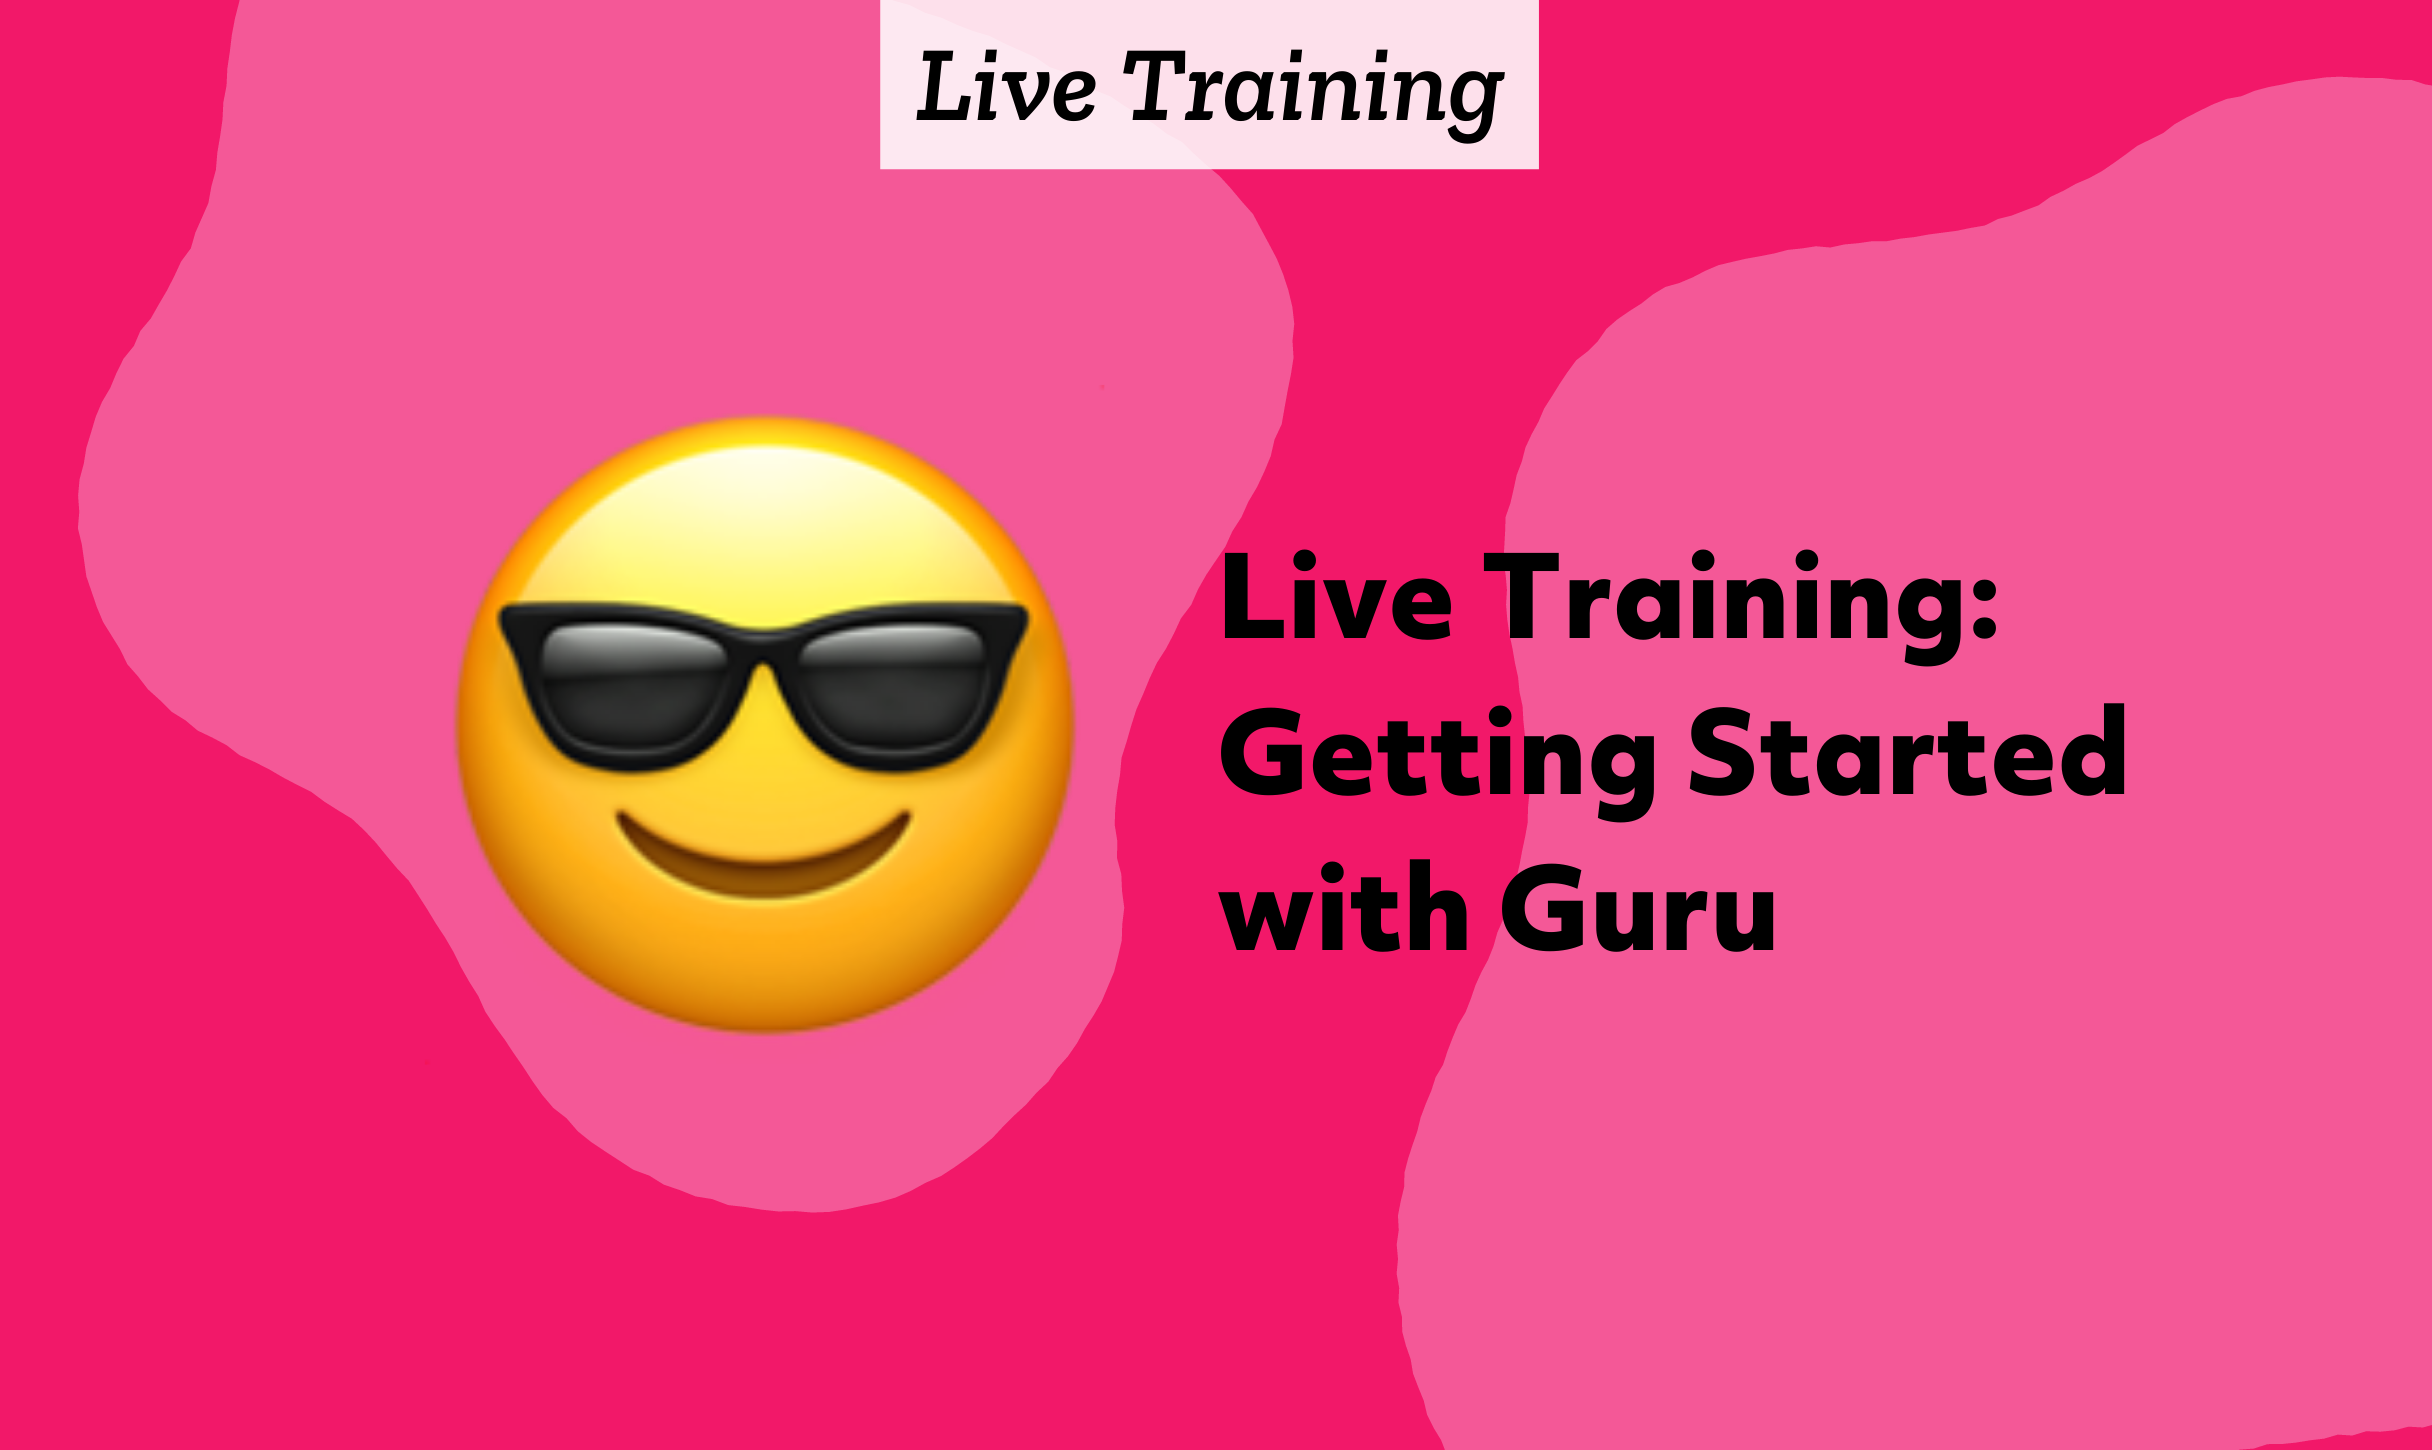 Live Training: Getting Started with Guru on 11/25/2020